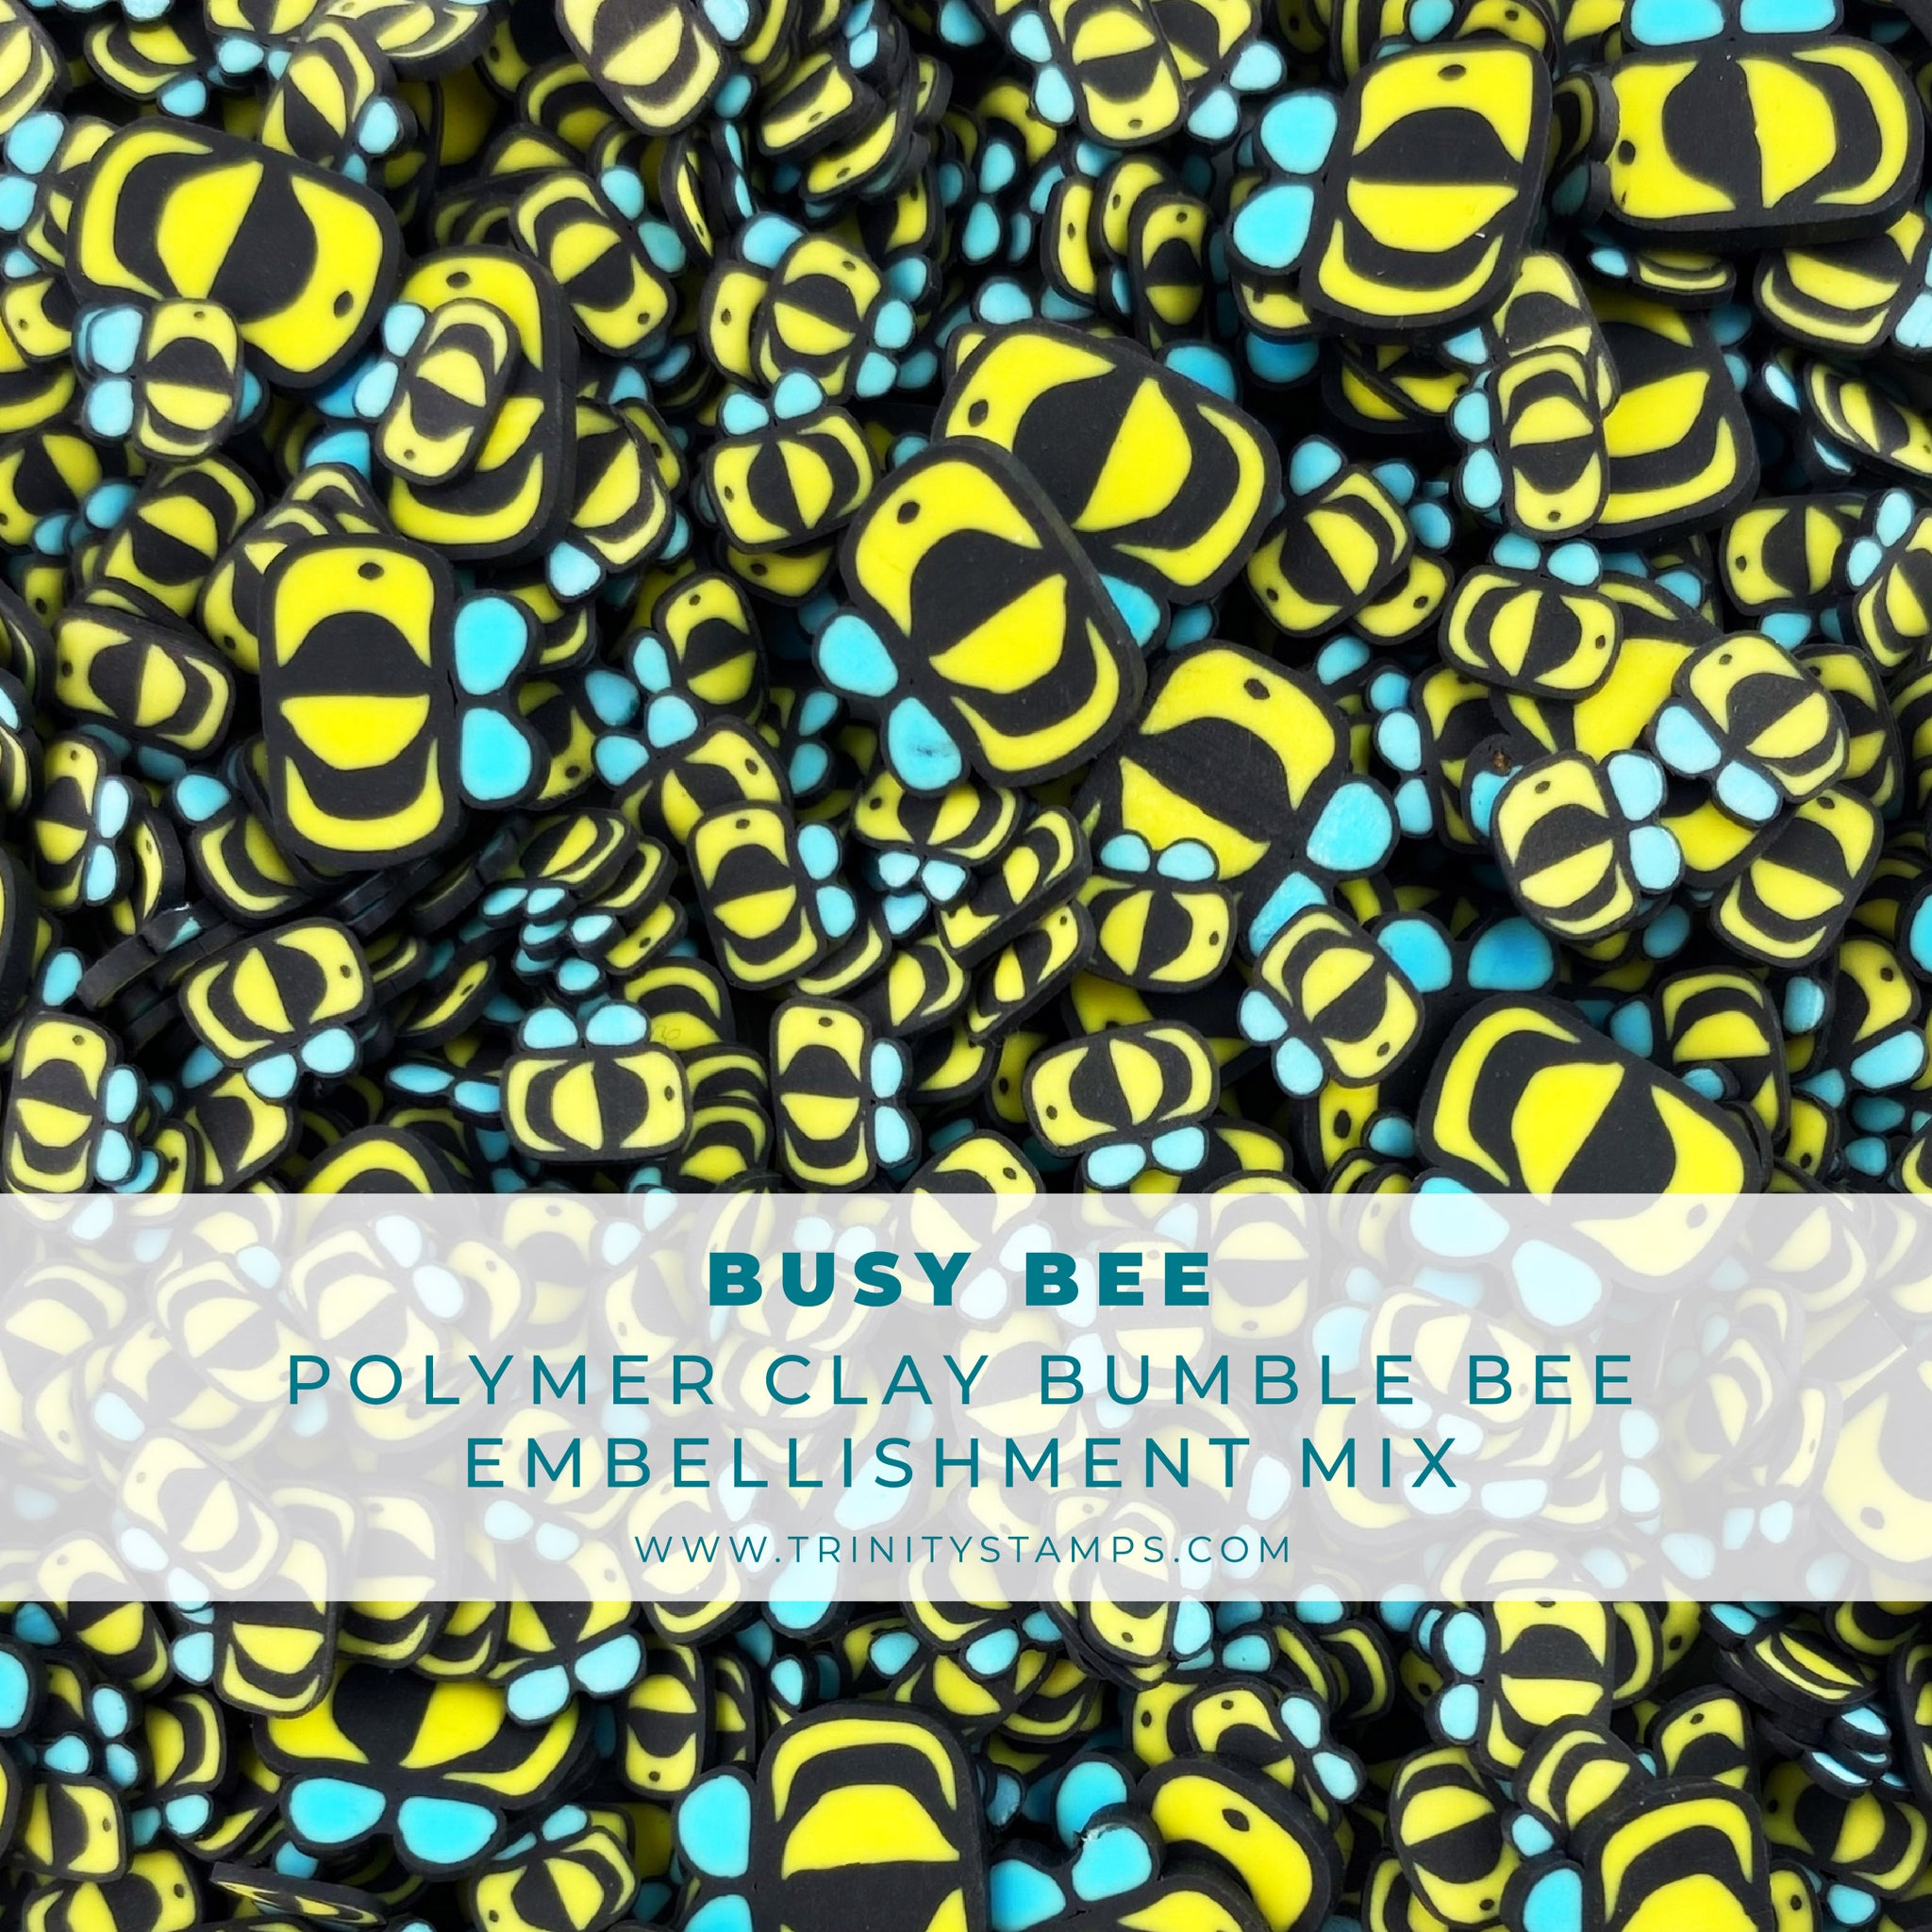 Busy Bee Clay Embellishment Mix